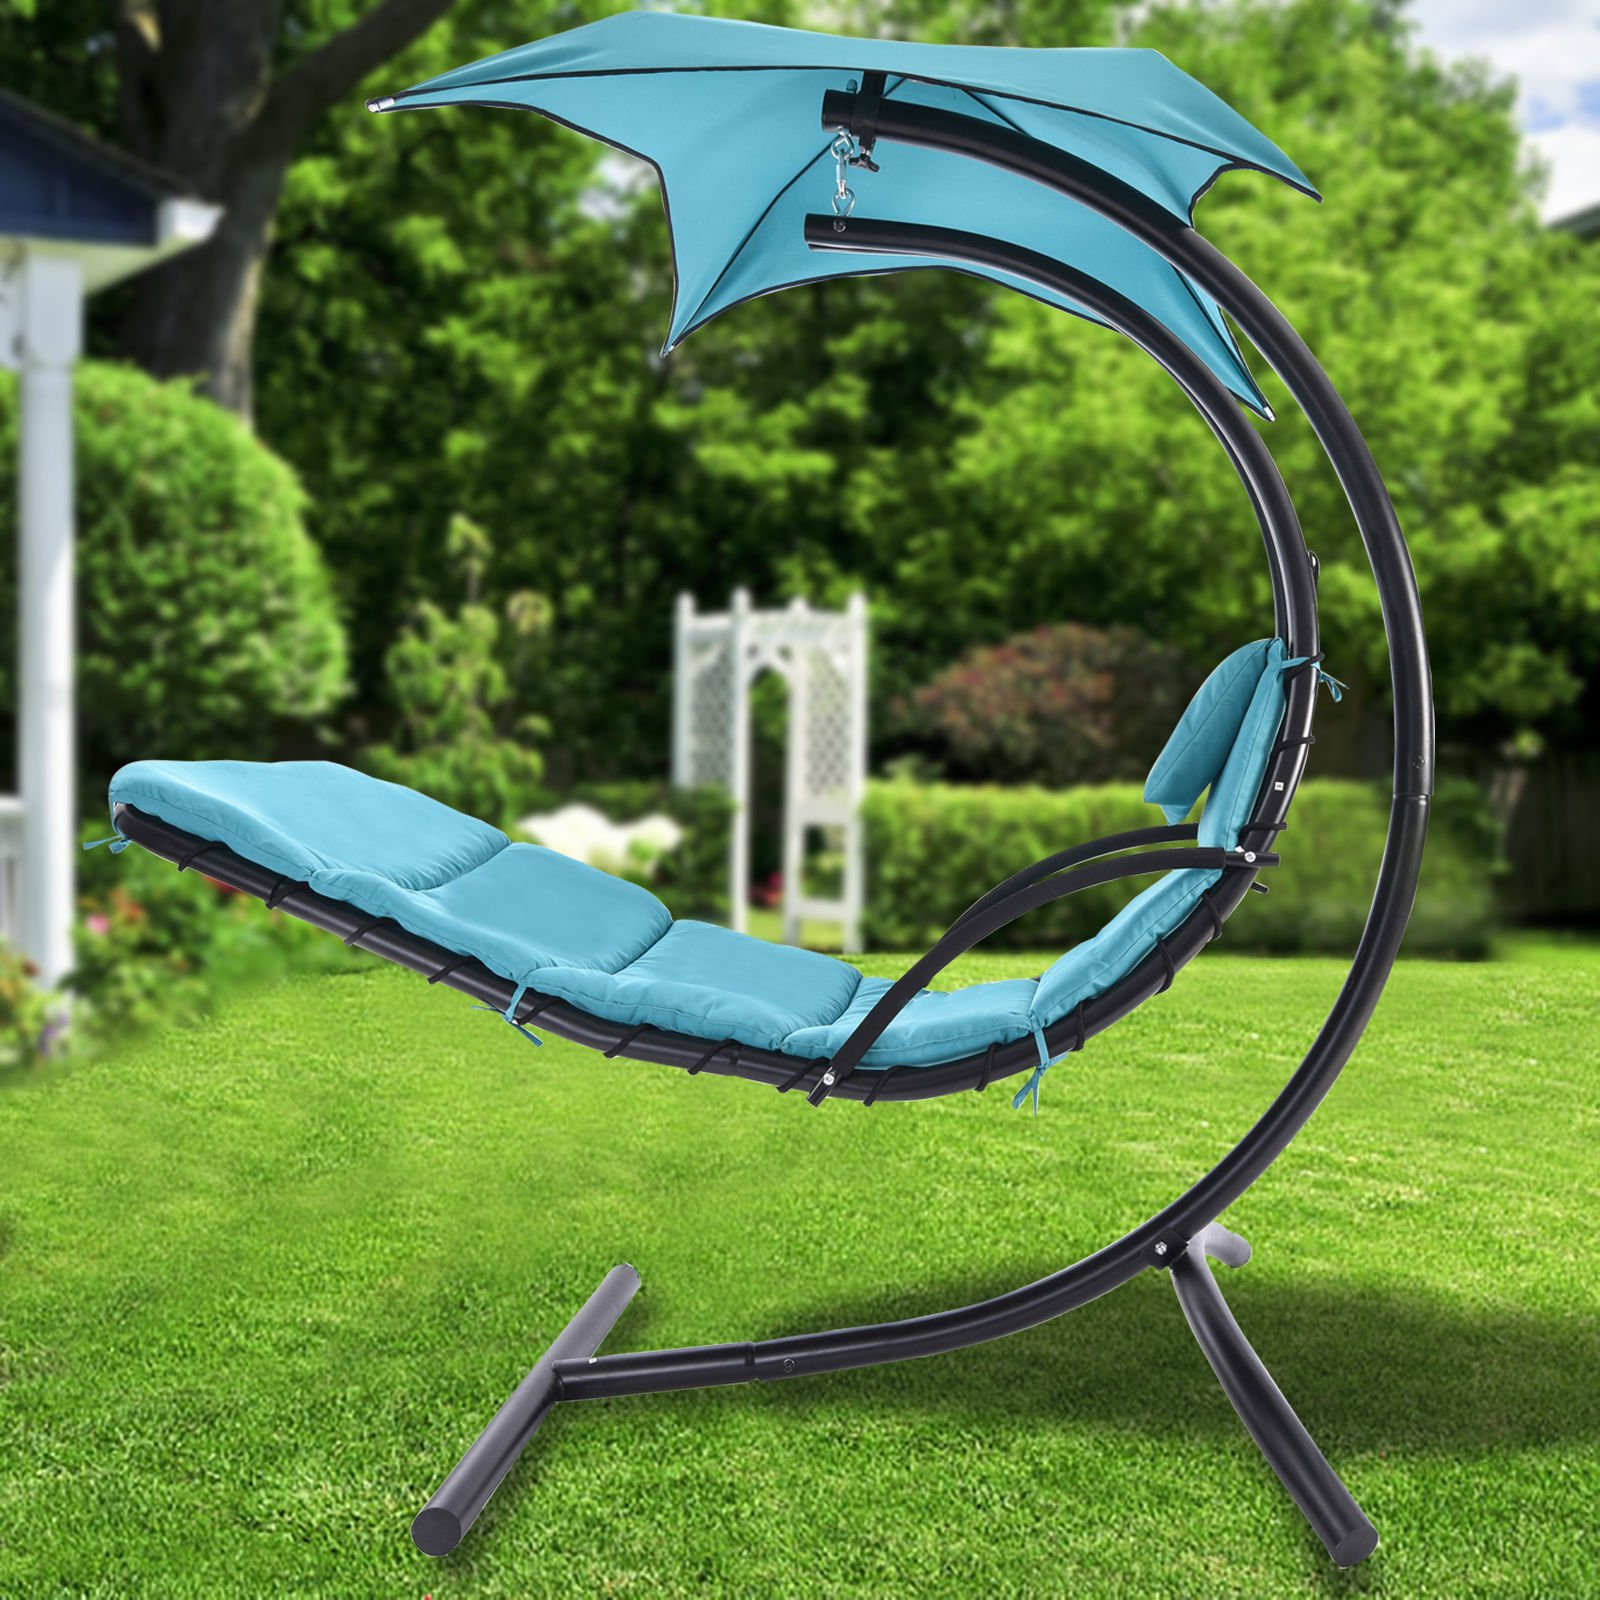 Patio Camping Hanging Swing Hammock Canopy Chaise Lounger Chair Porch Deck Blue